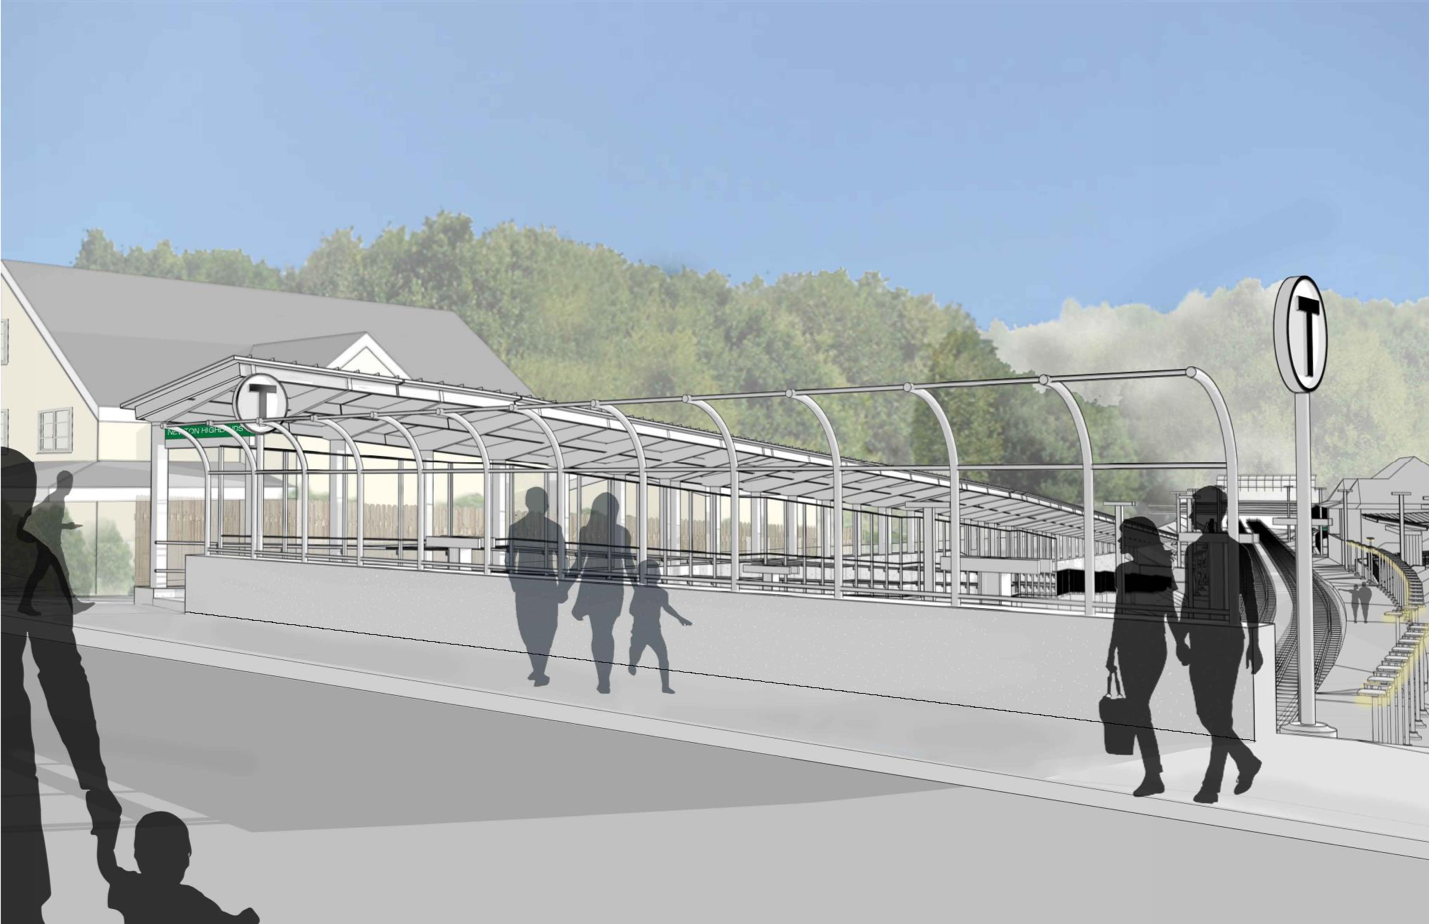 Rendering of Hyde Street entrance with a new ramp with canopy